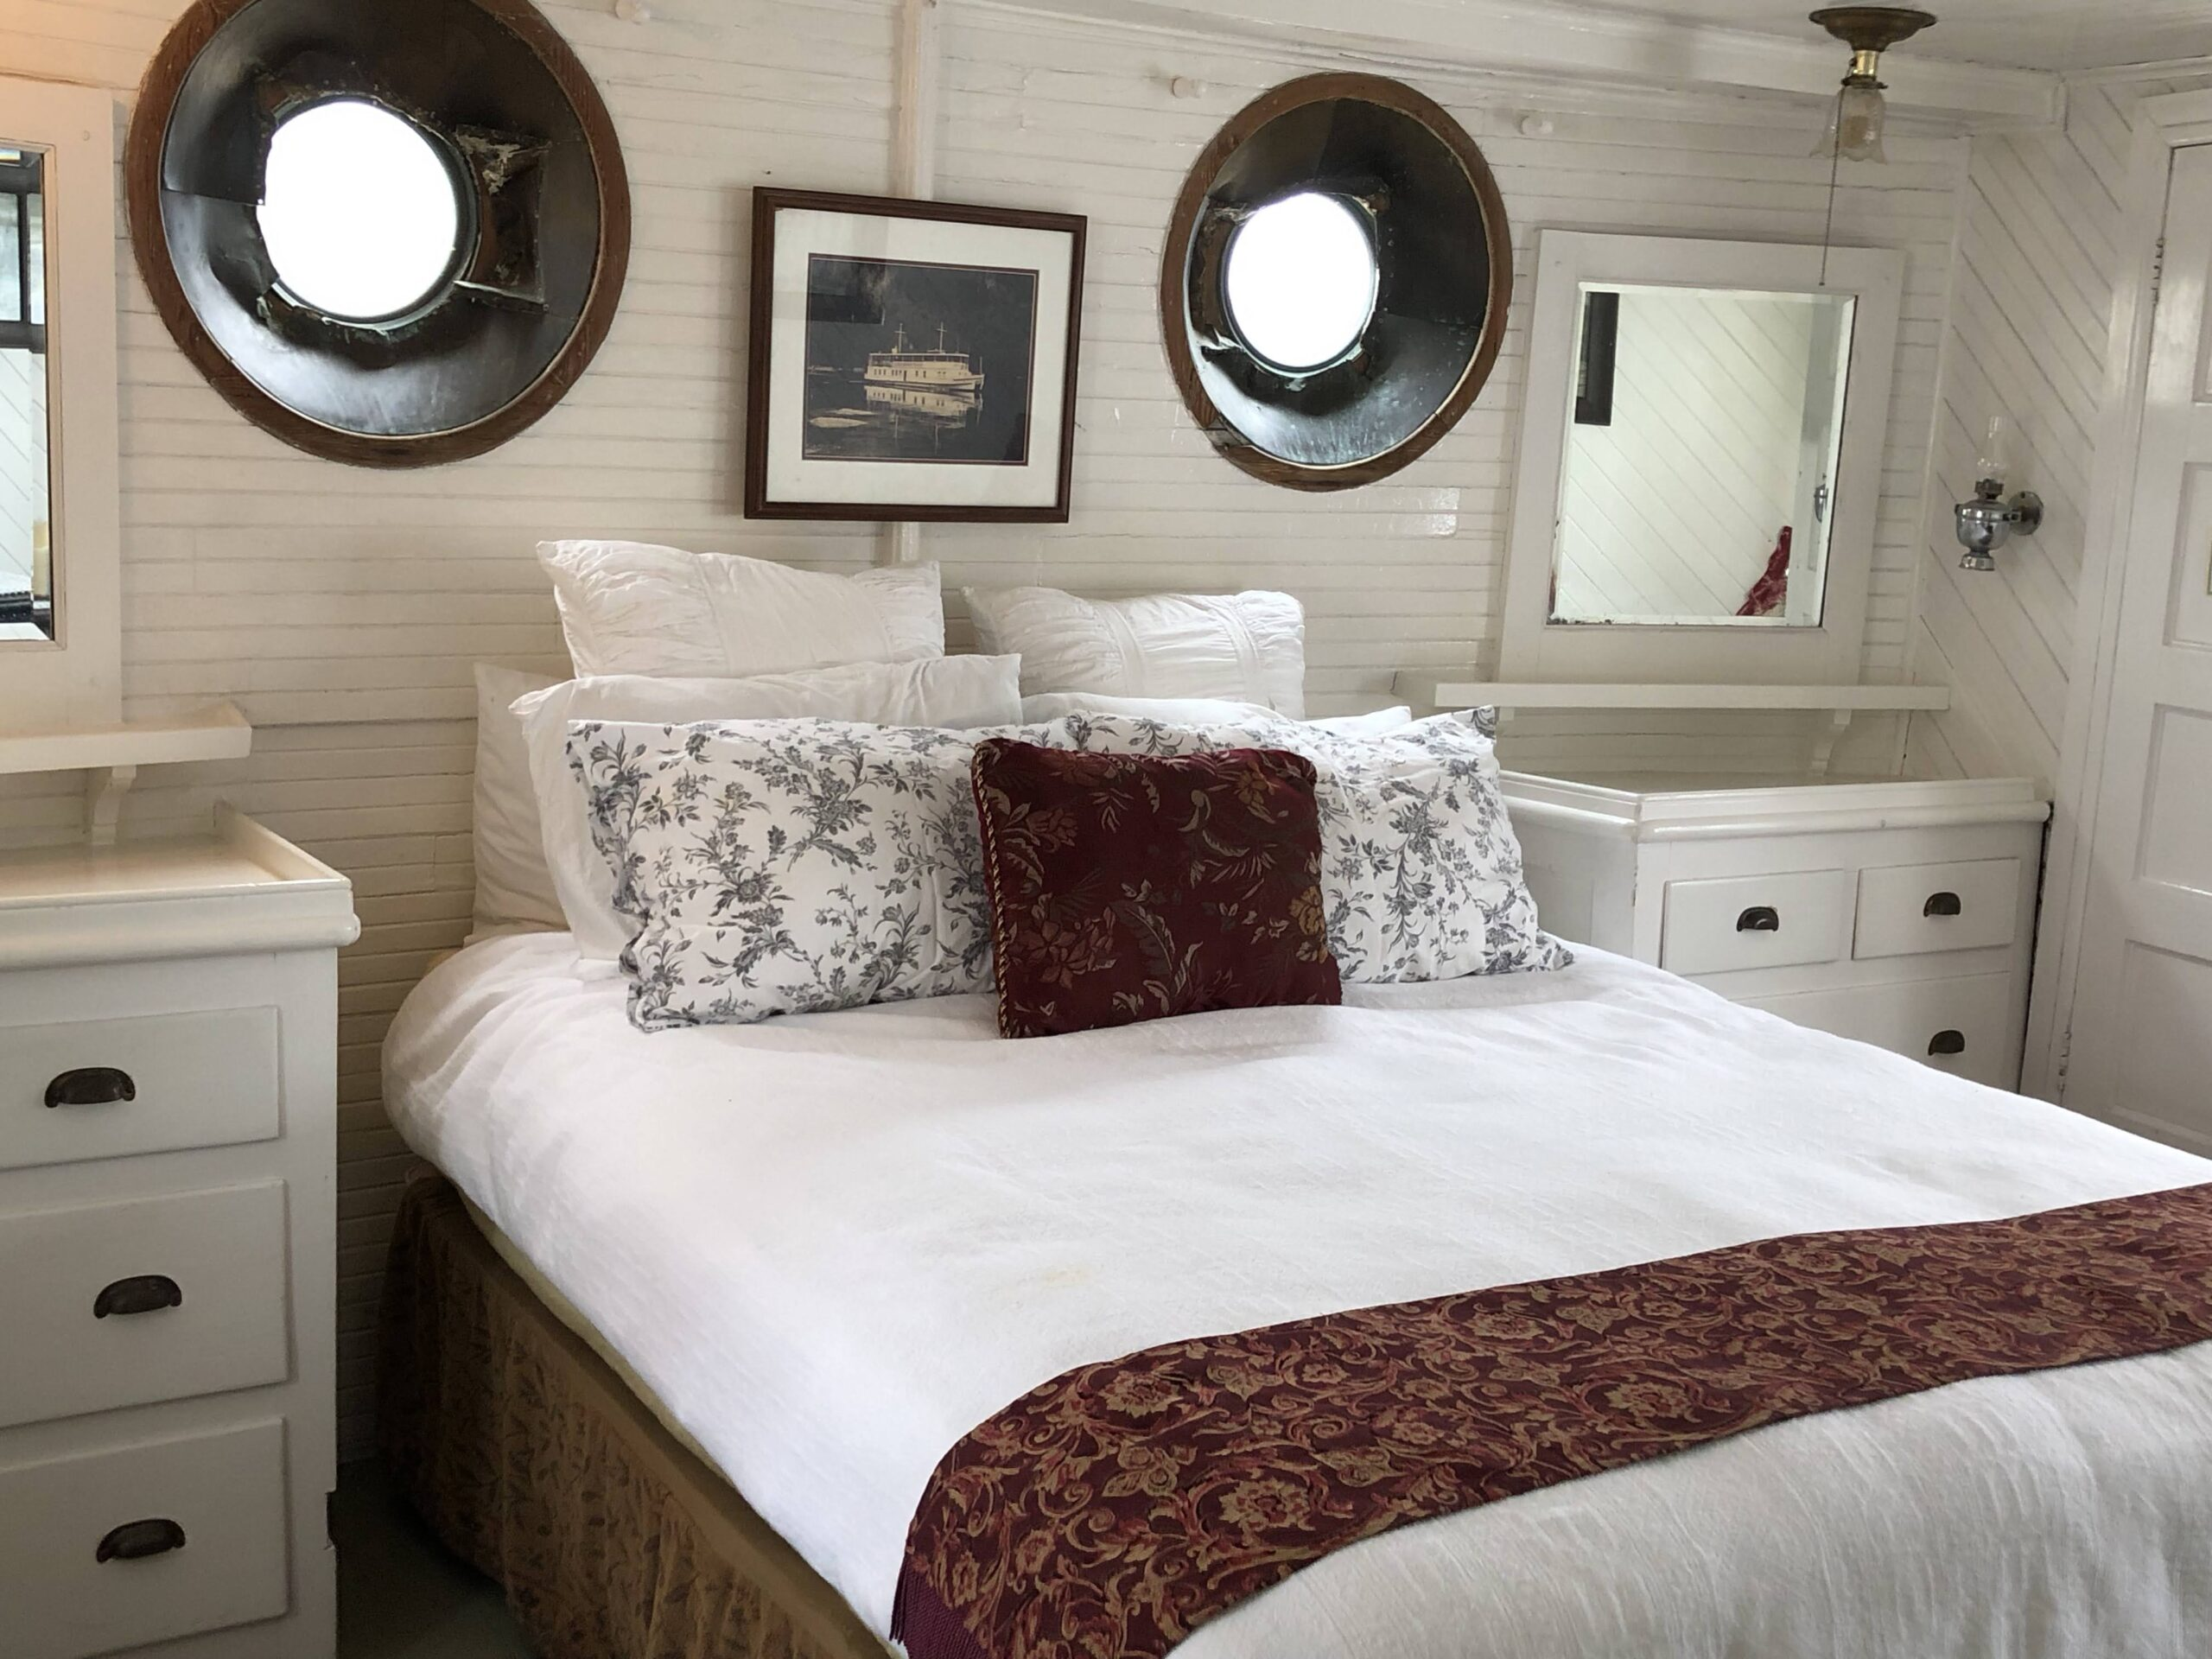 The bed and built-in drawers of the master stateroom on Lotus